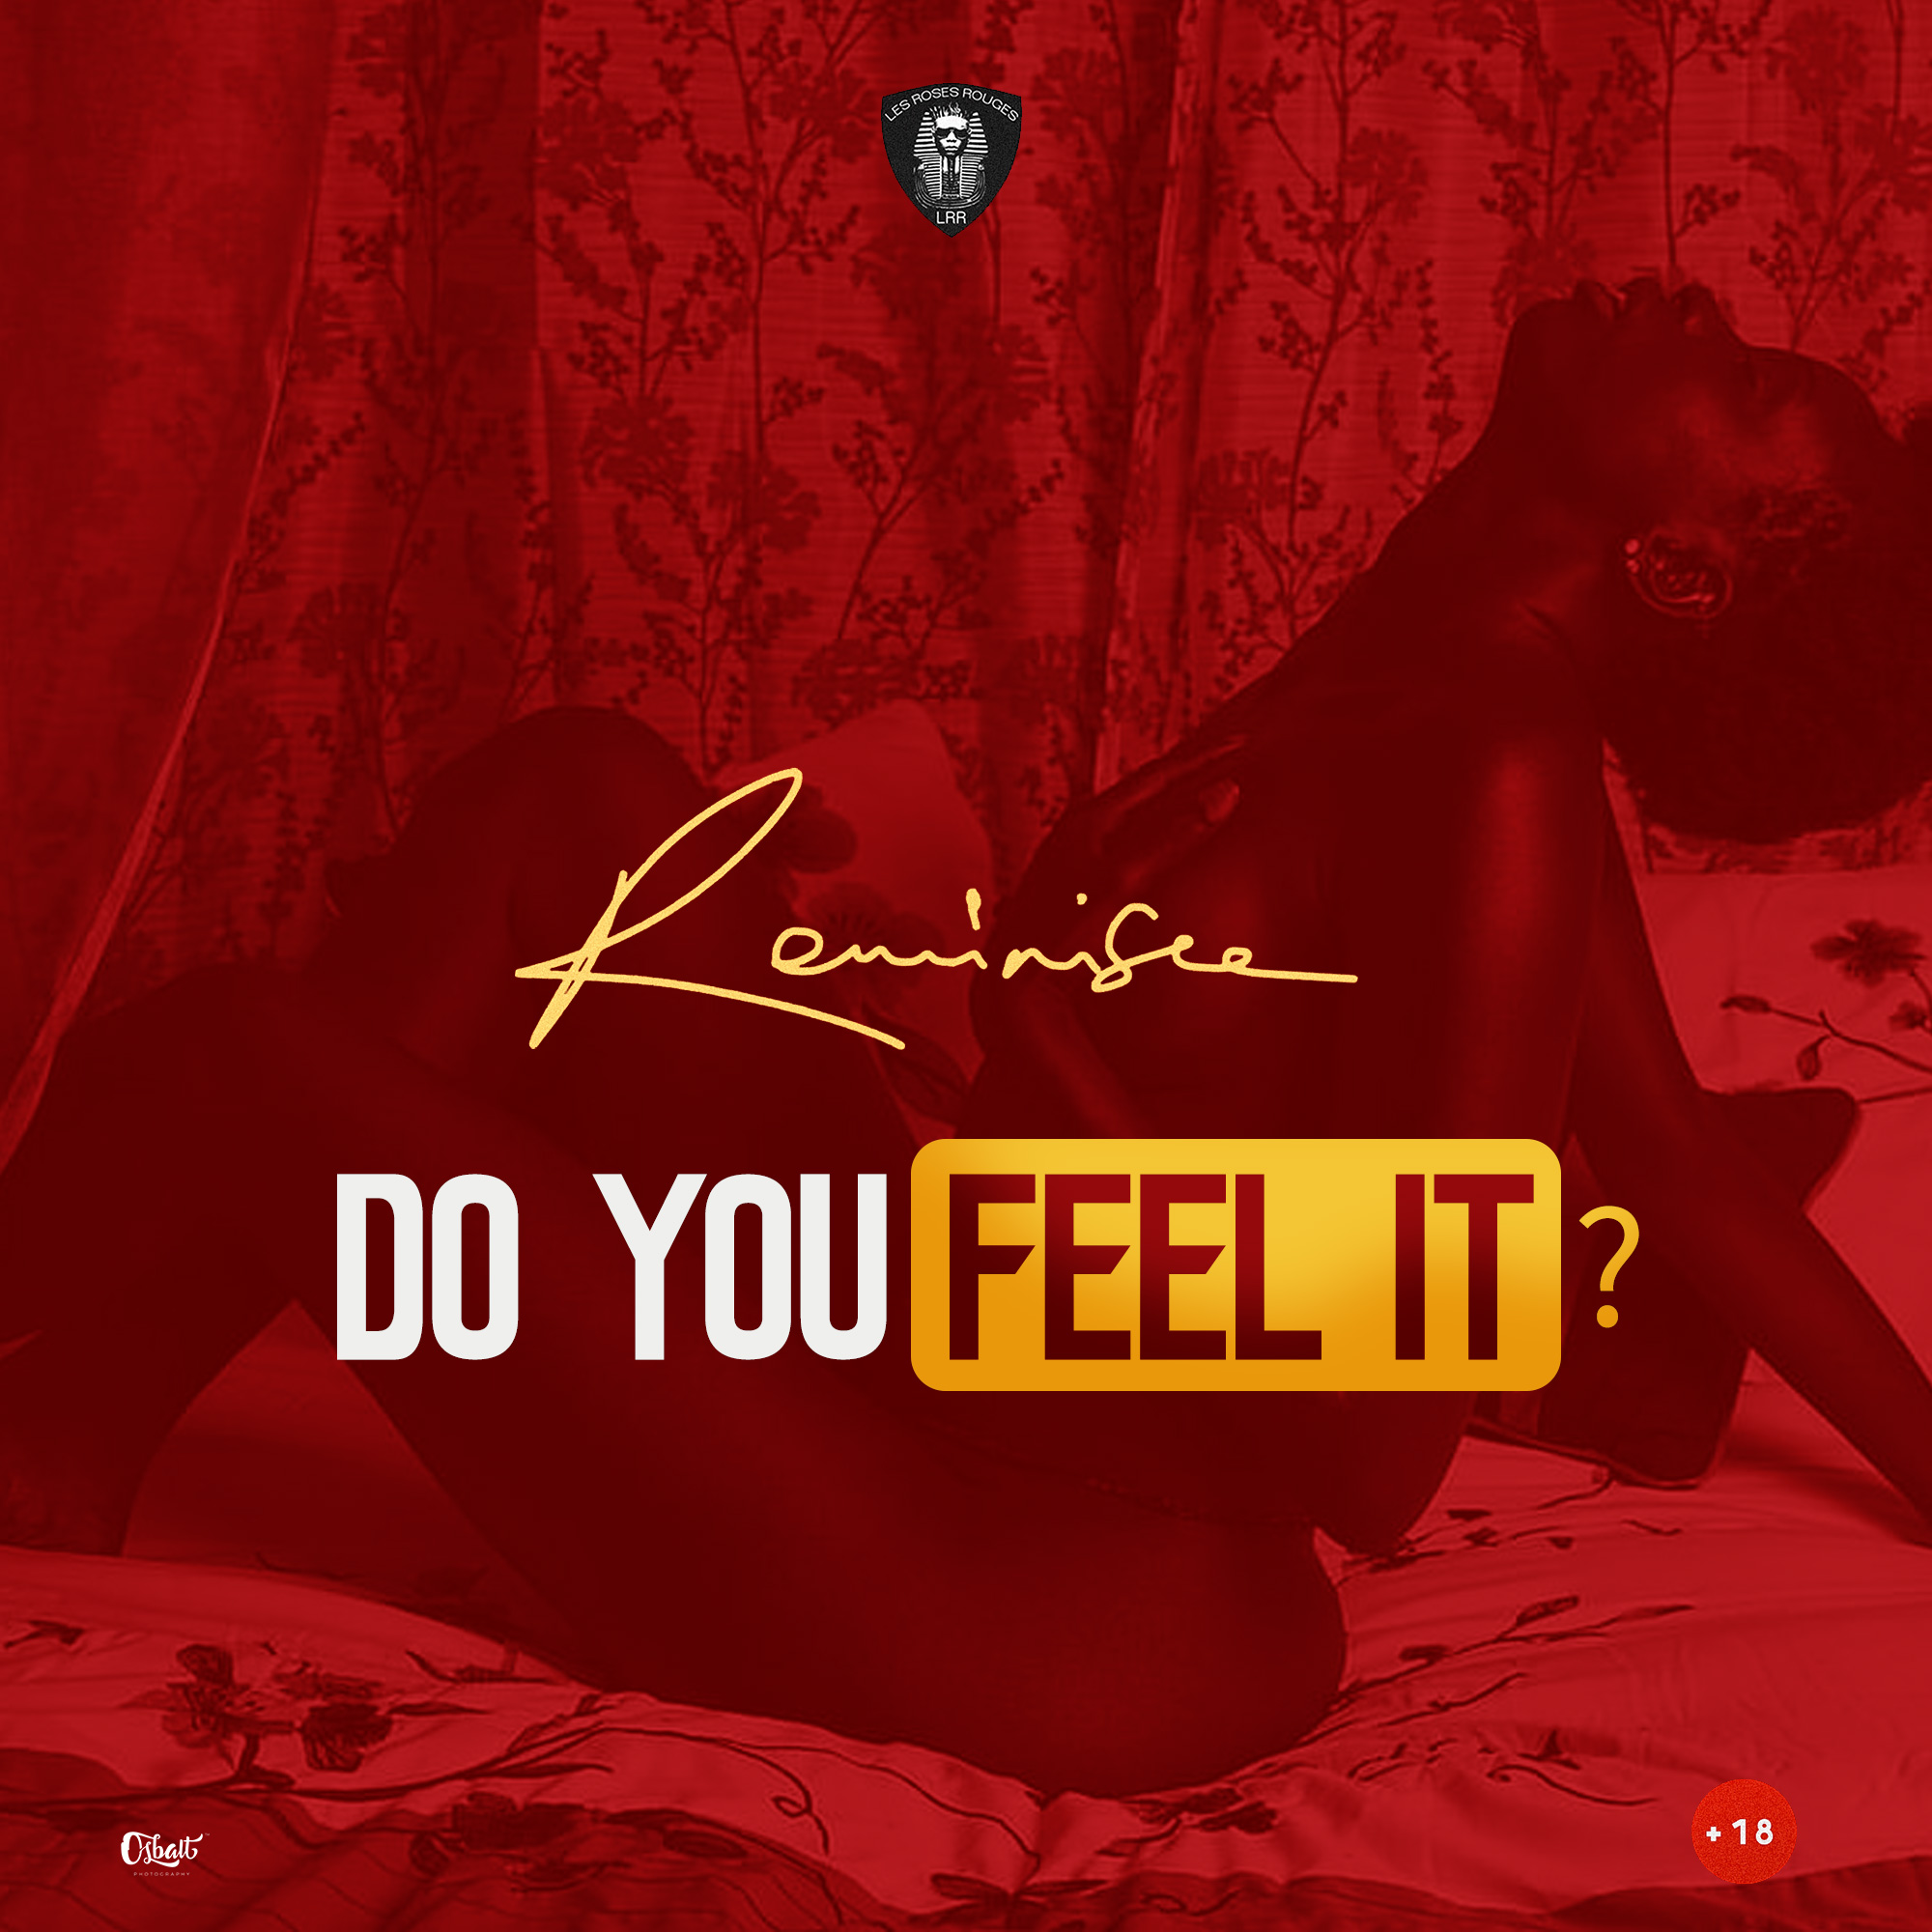 Reminisce - Do You Feel It?